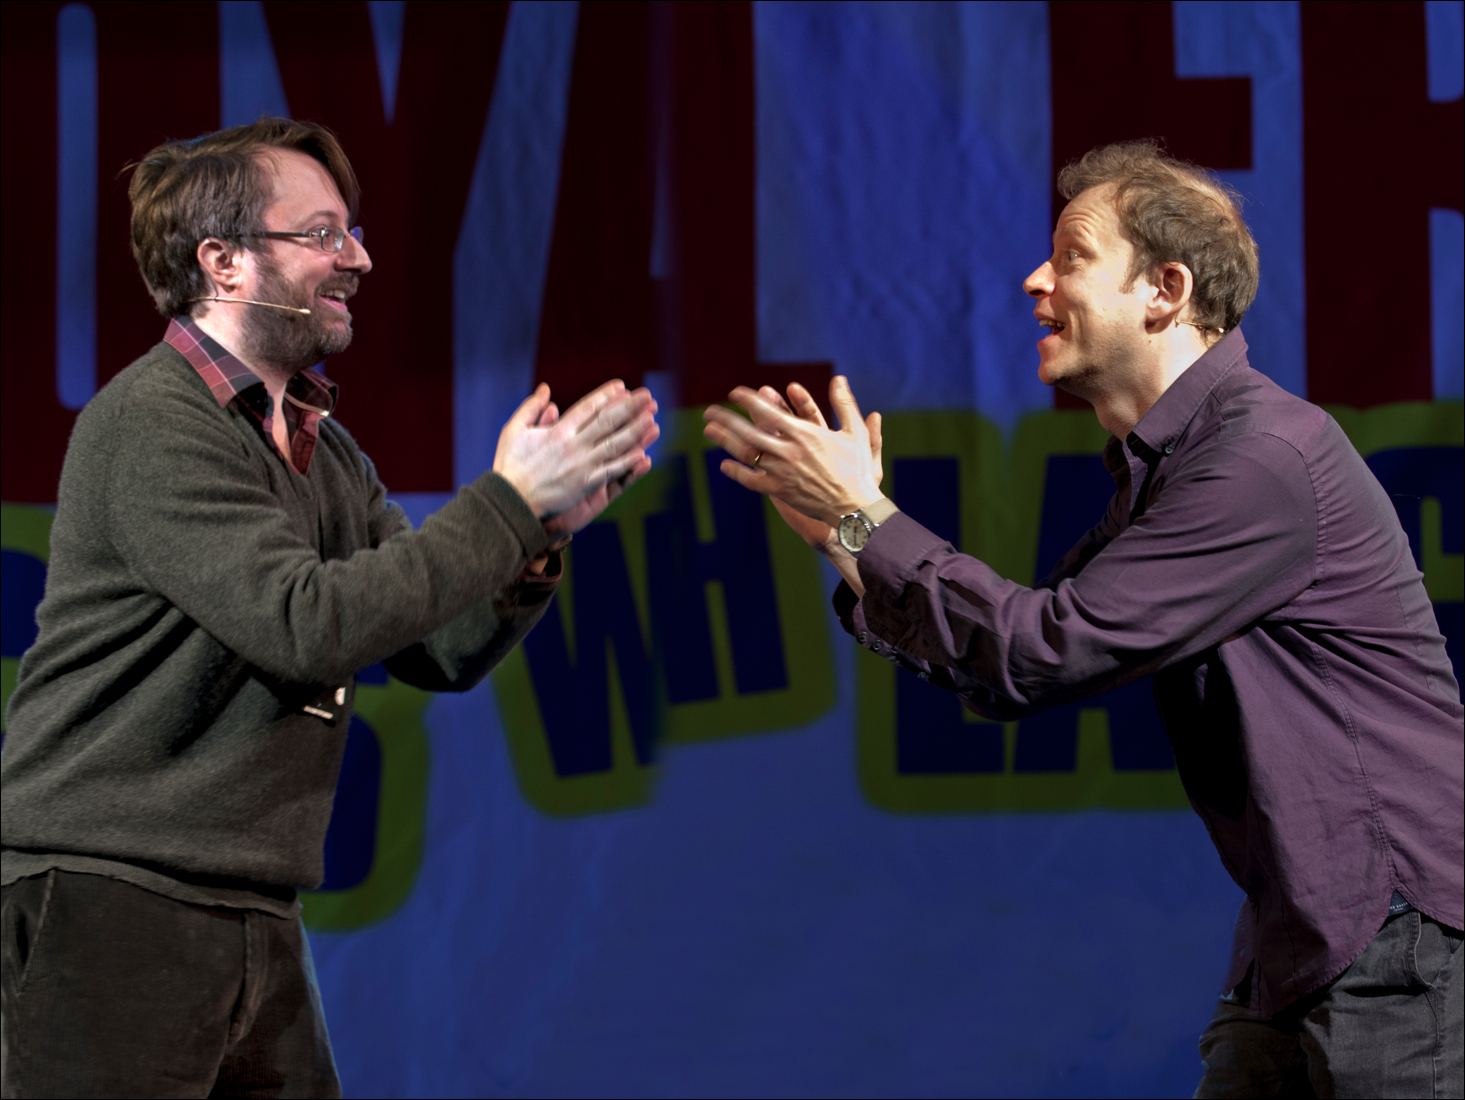 David Mitchell and Robert Webb